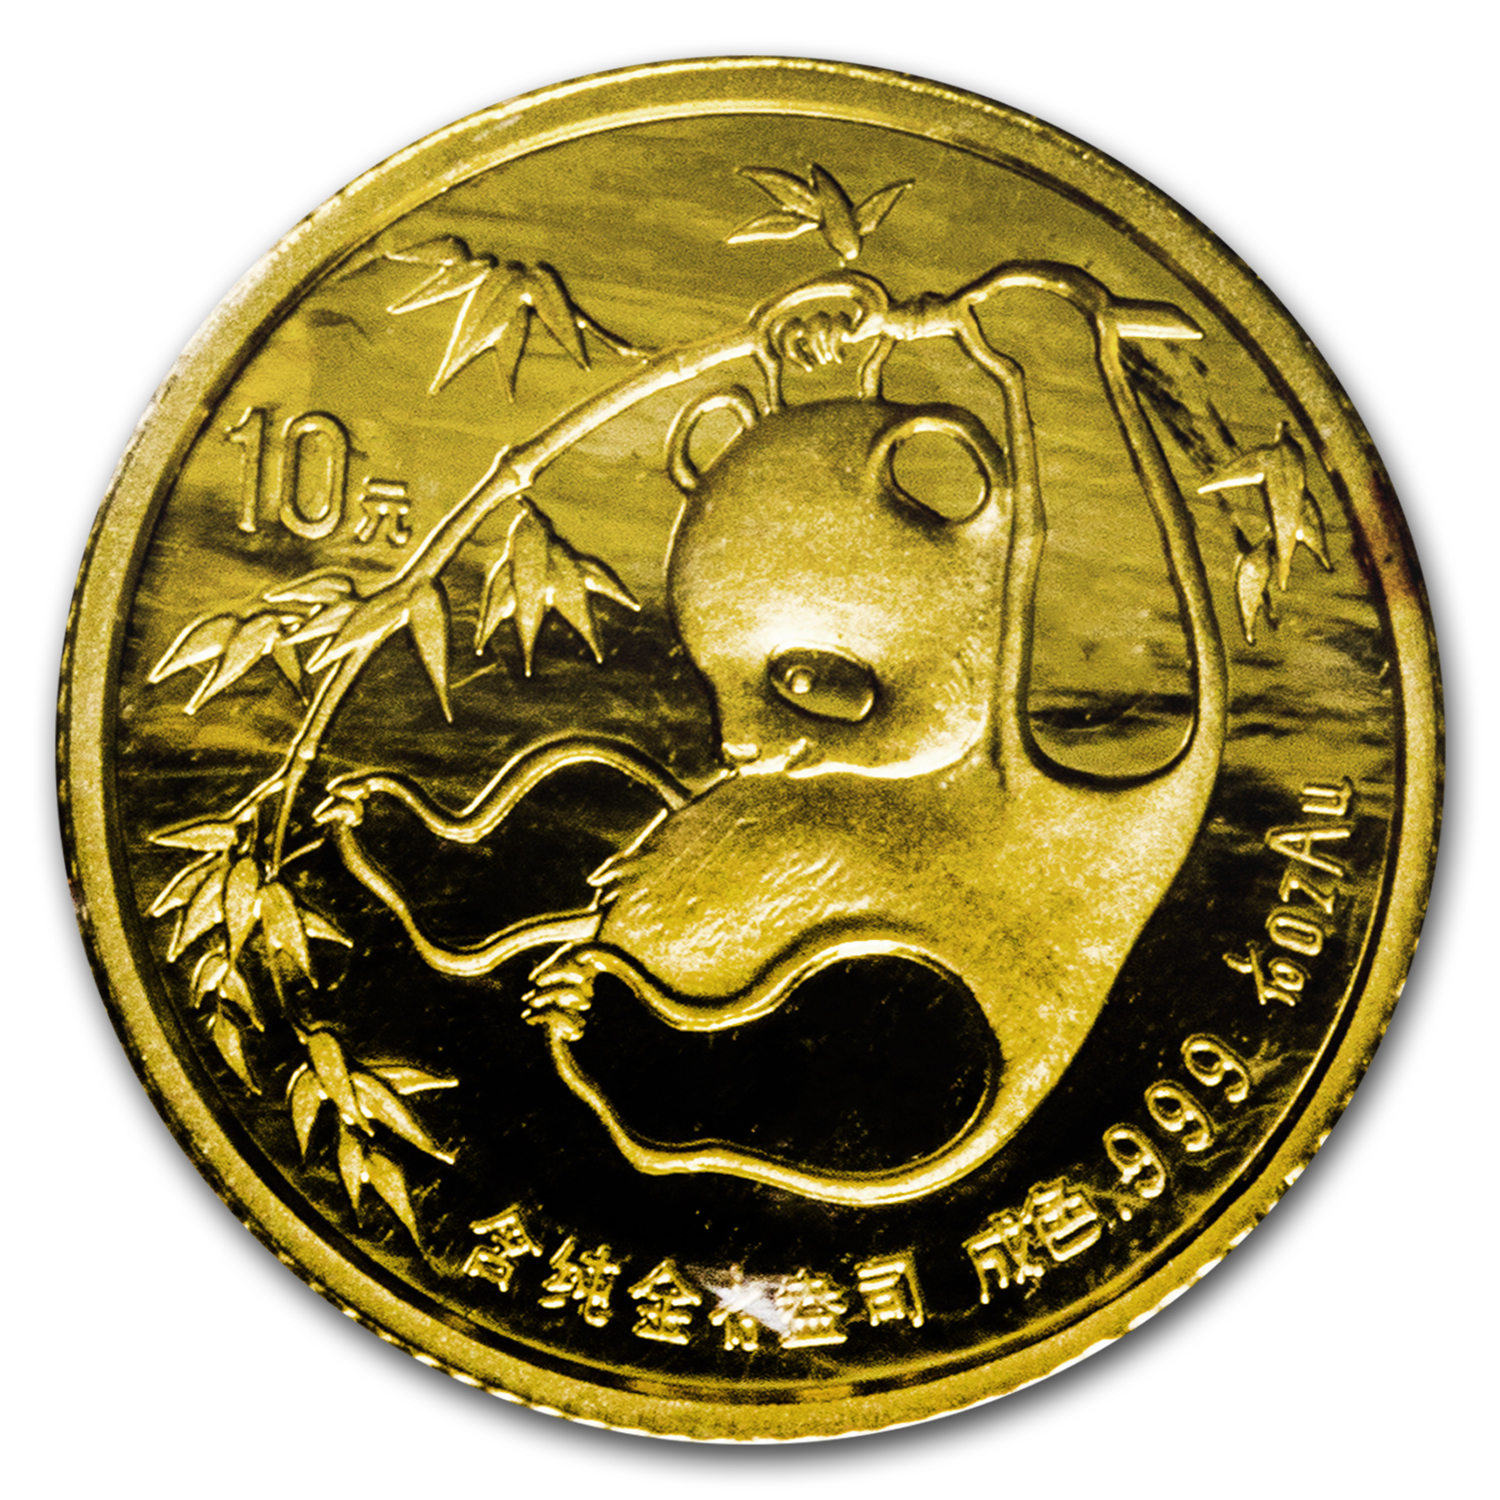 1985 China 1/10 oz Gold Panda BU (Sealed)